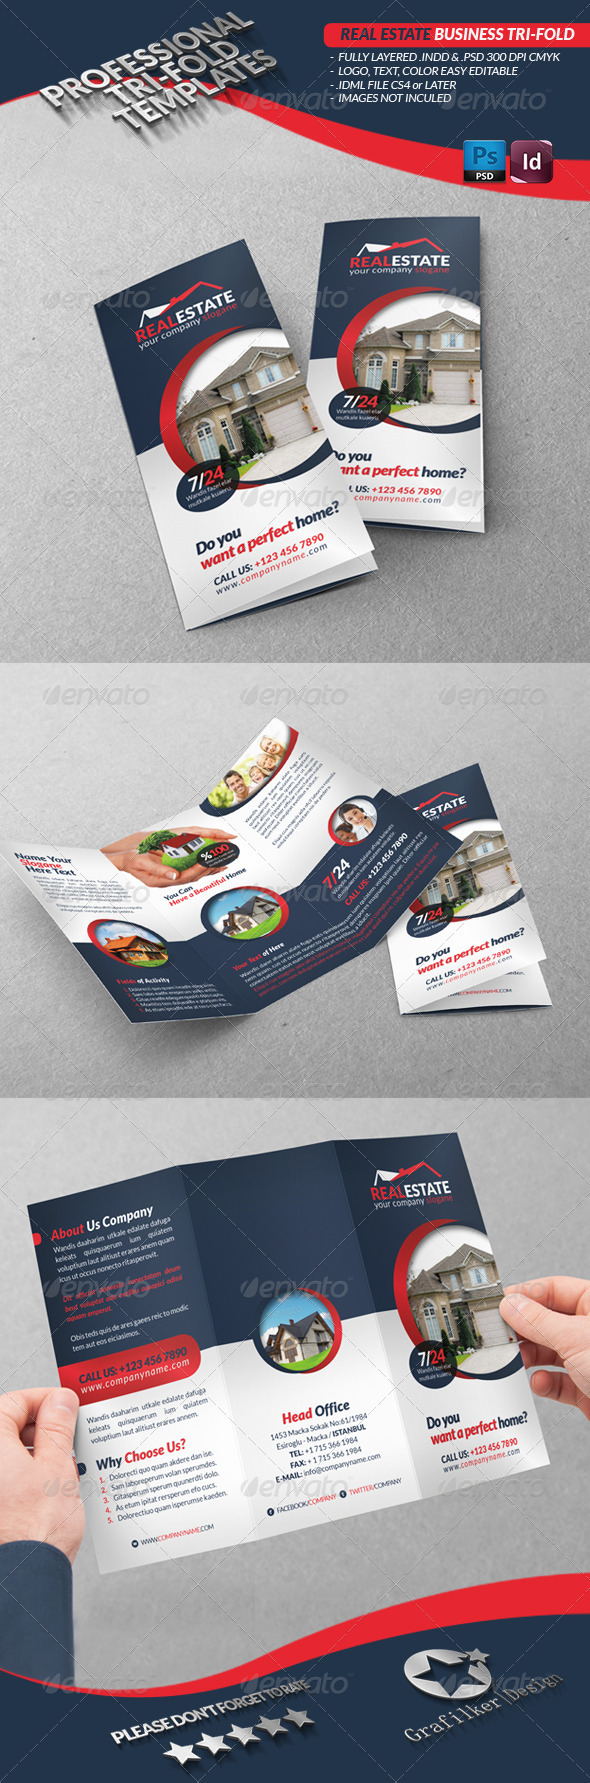 Real Estate Business Tri-Fold - Brochures Print Templates